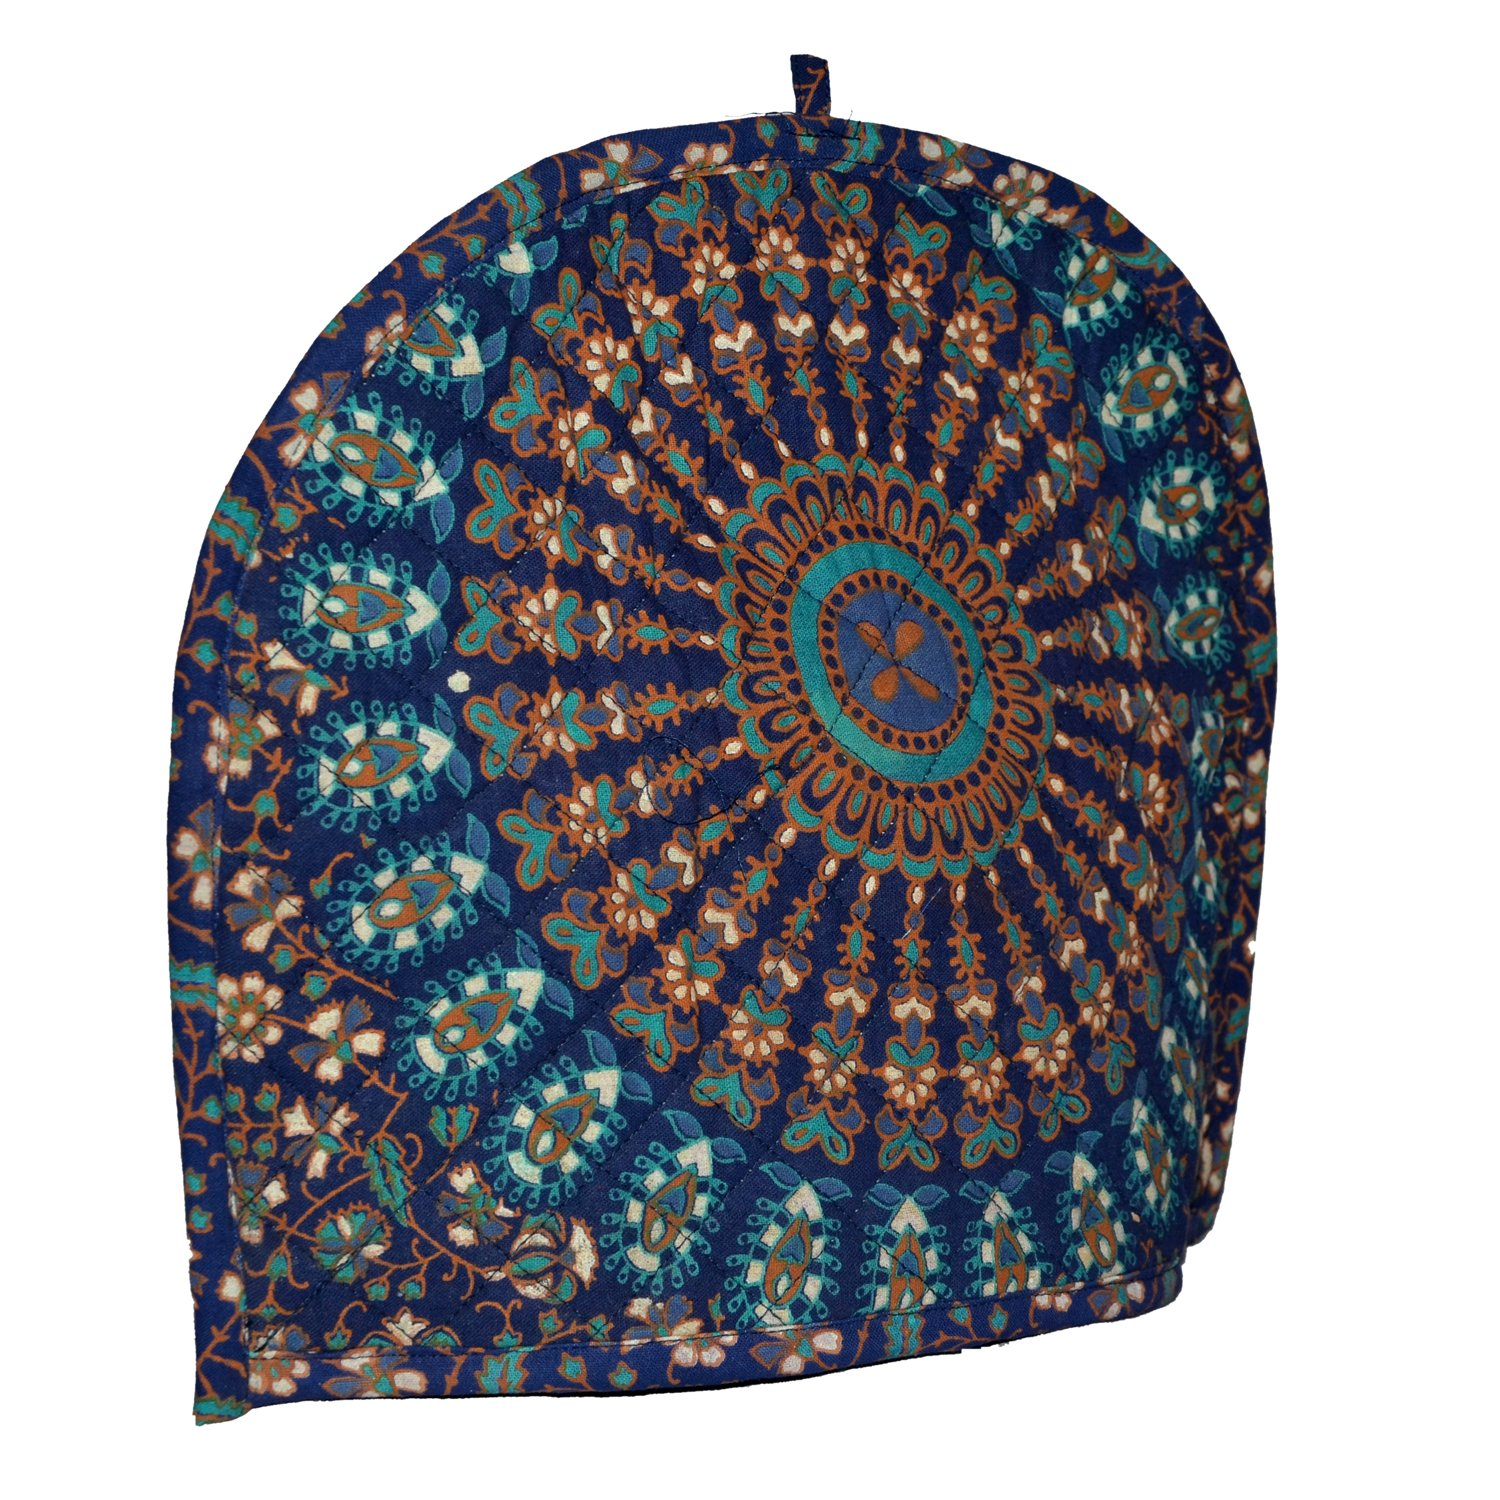 New blue ombre mandala Tea cozy For Teapot Mandala Print 100% Cotton Tea Cosy, tea cozy for 2 cup teapot,Tea Pot Cover,Tea Cozy cover, blue ombre Mandala Tea cosy Cover by Marudhara Fashion (Image #2)